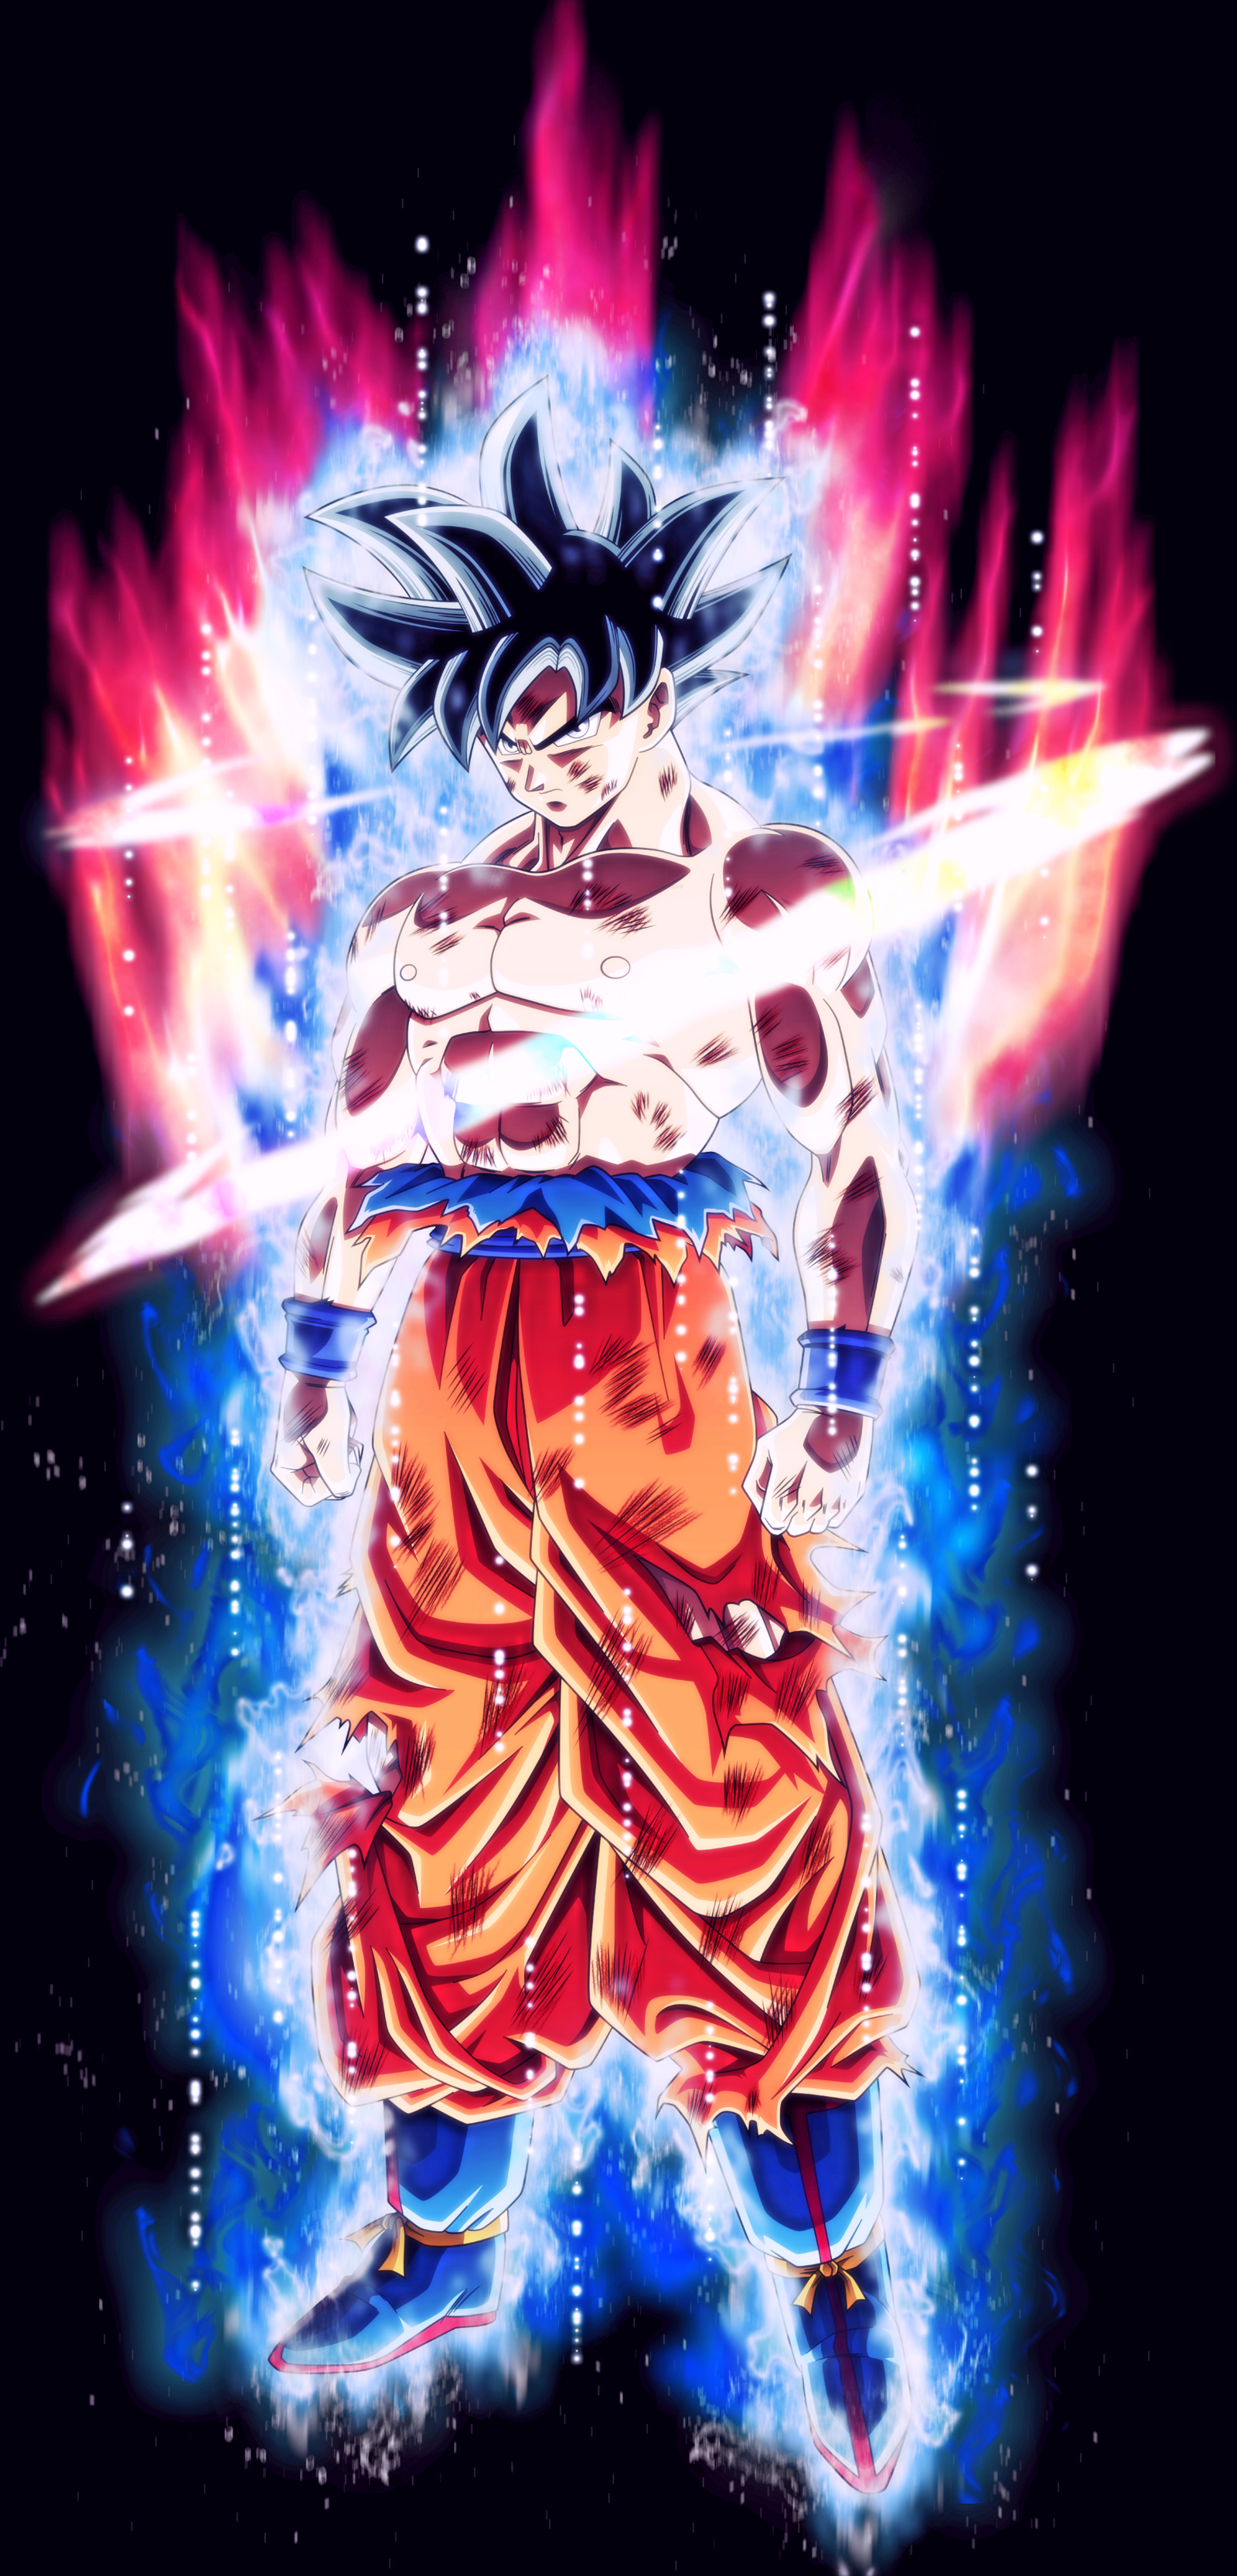 Dragon Ball Z Kai Final Chapters Dragon Ball Gt Fondos De